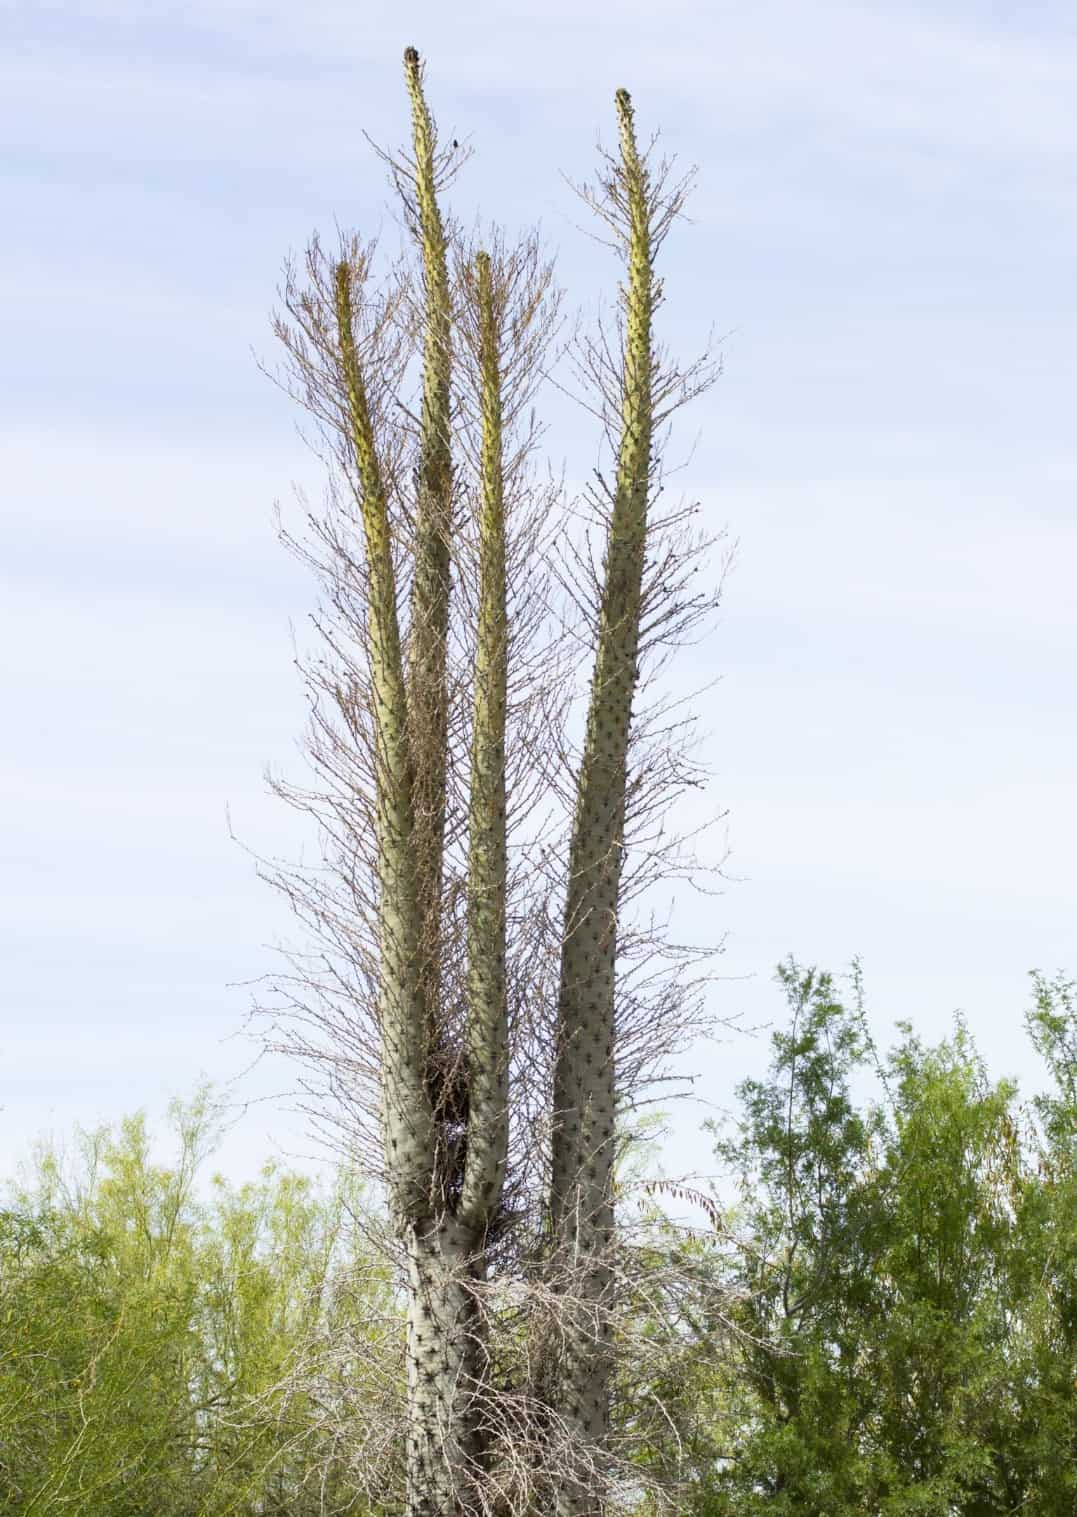 The boojum is an unusual flowering tree.